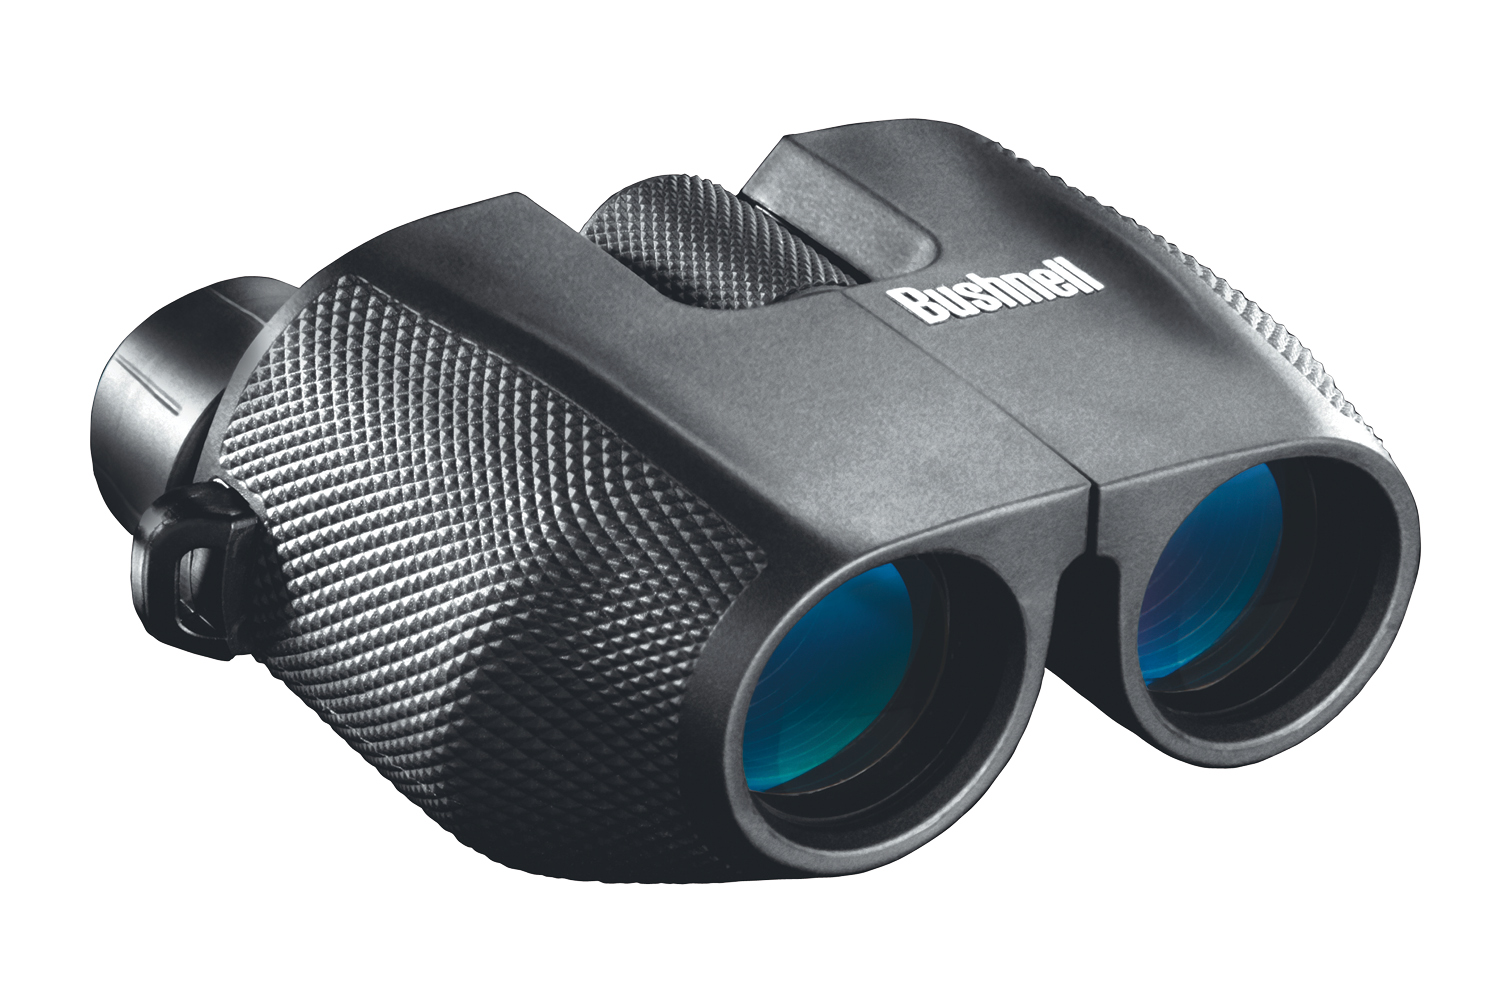 Бинокль Bushnell PowerView PORRO 8x25 бинокль levenhuk rainbow 8x25 голубой